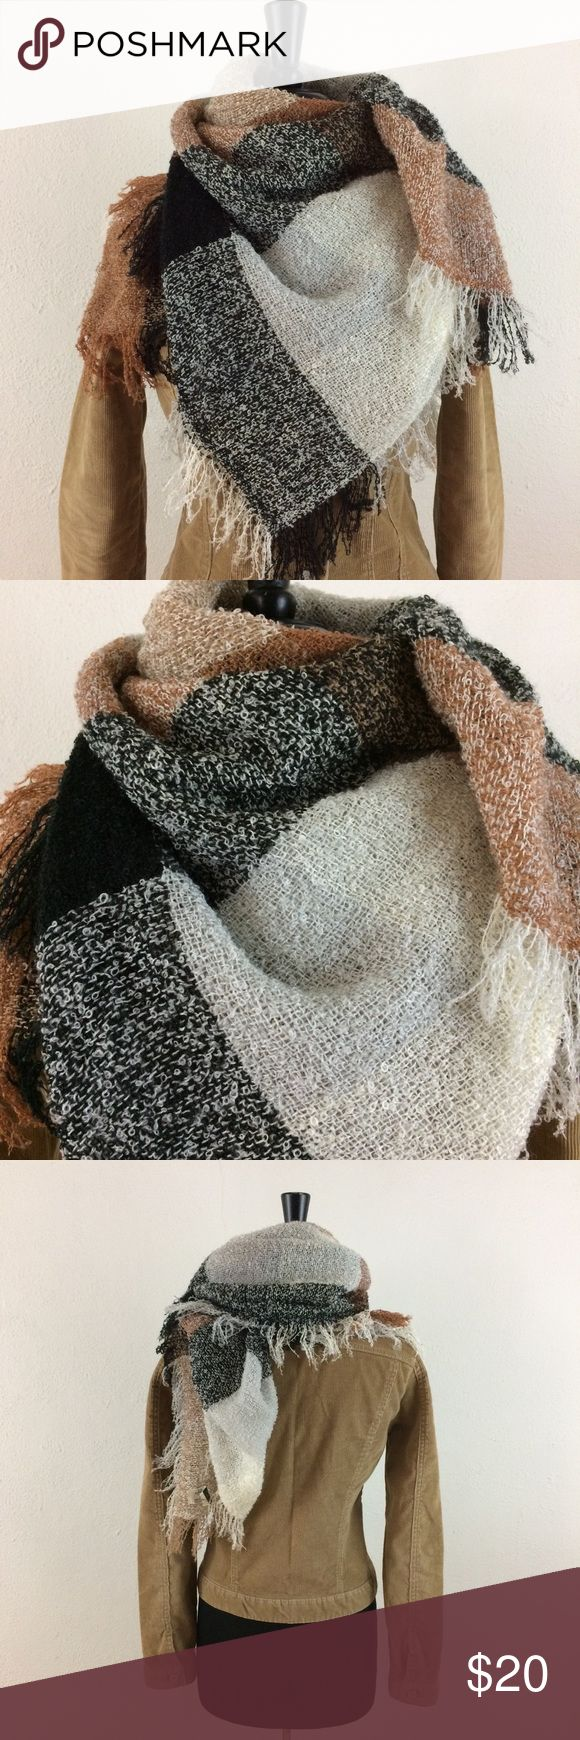 "🔥SALE!🔥 Vintage Baar and Beards Scarf SALE! $8 OFF Ends 1/31/18. Acrylic fiber, 38""x38"" square. Like new. Baar and Beards Accessories Scarves & Wraps"